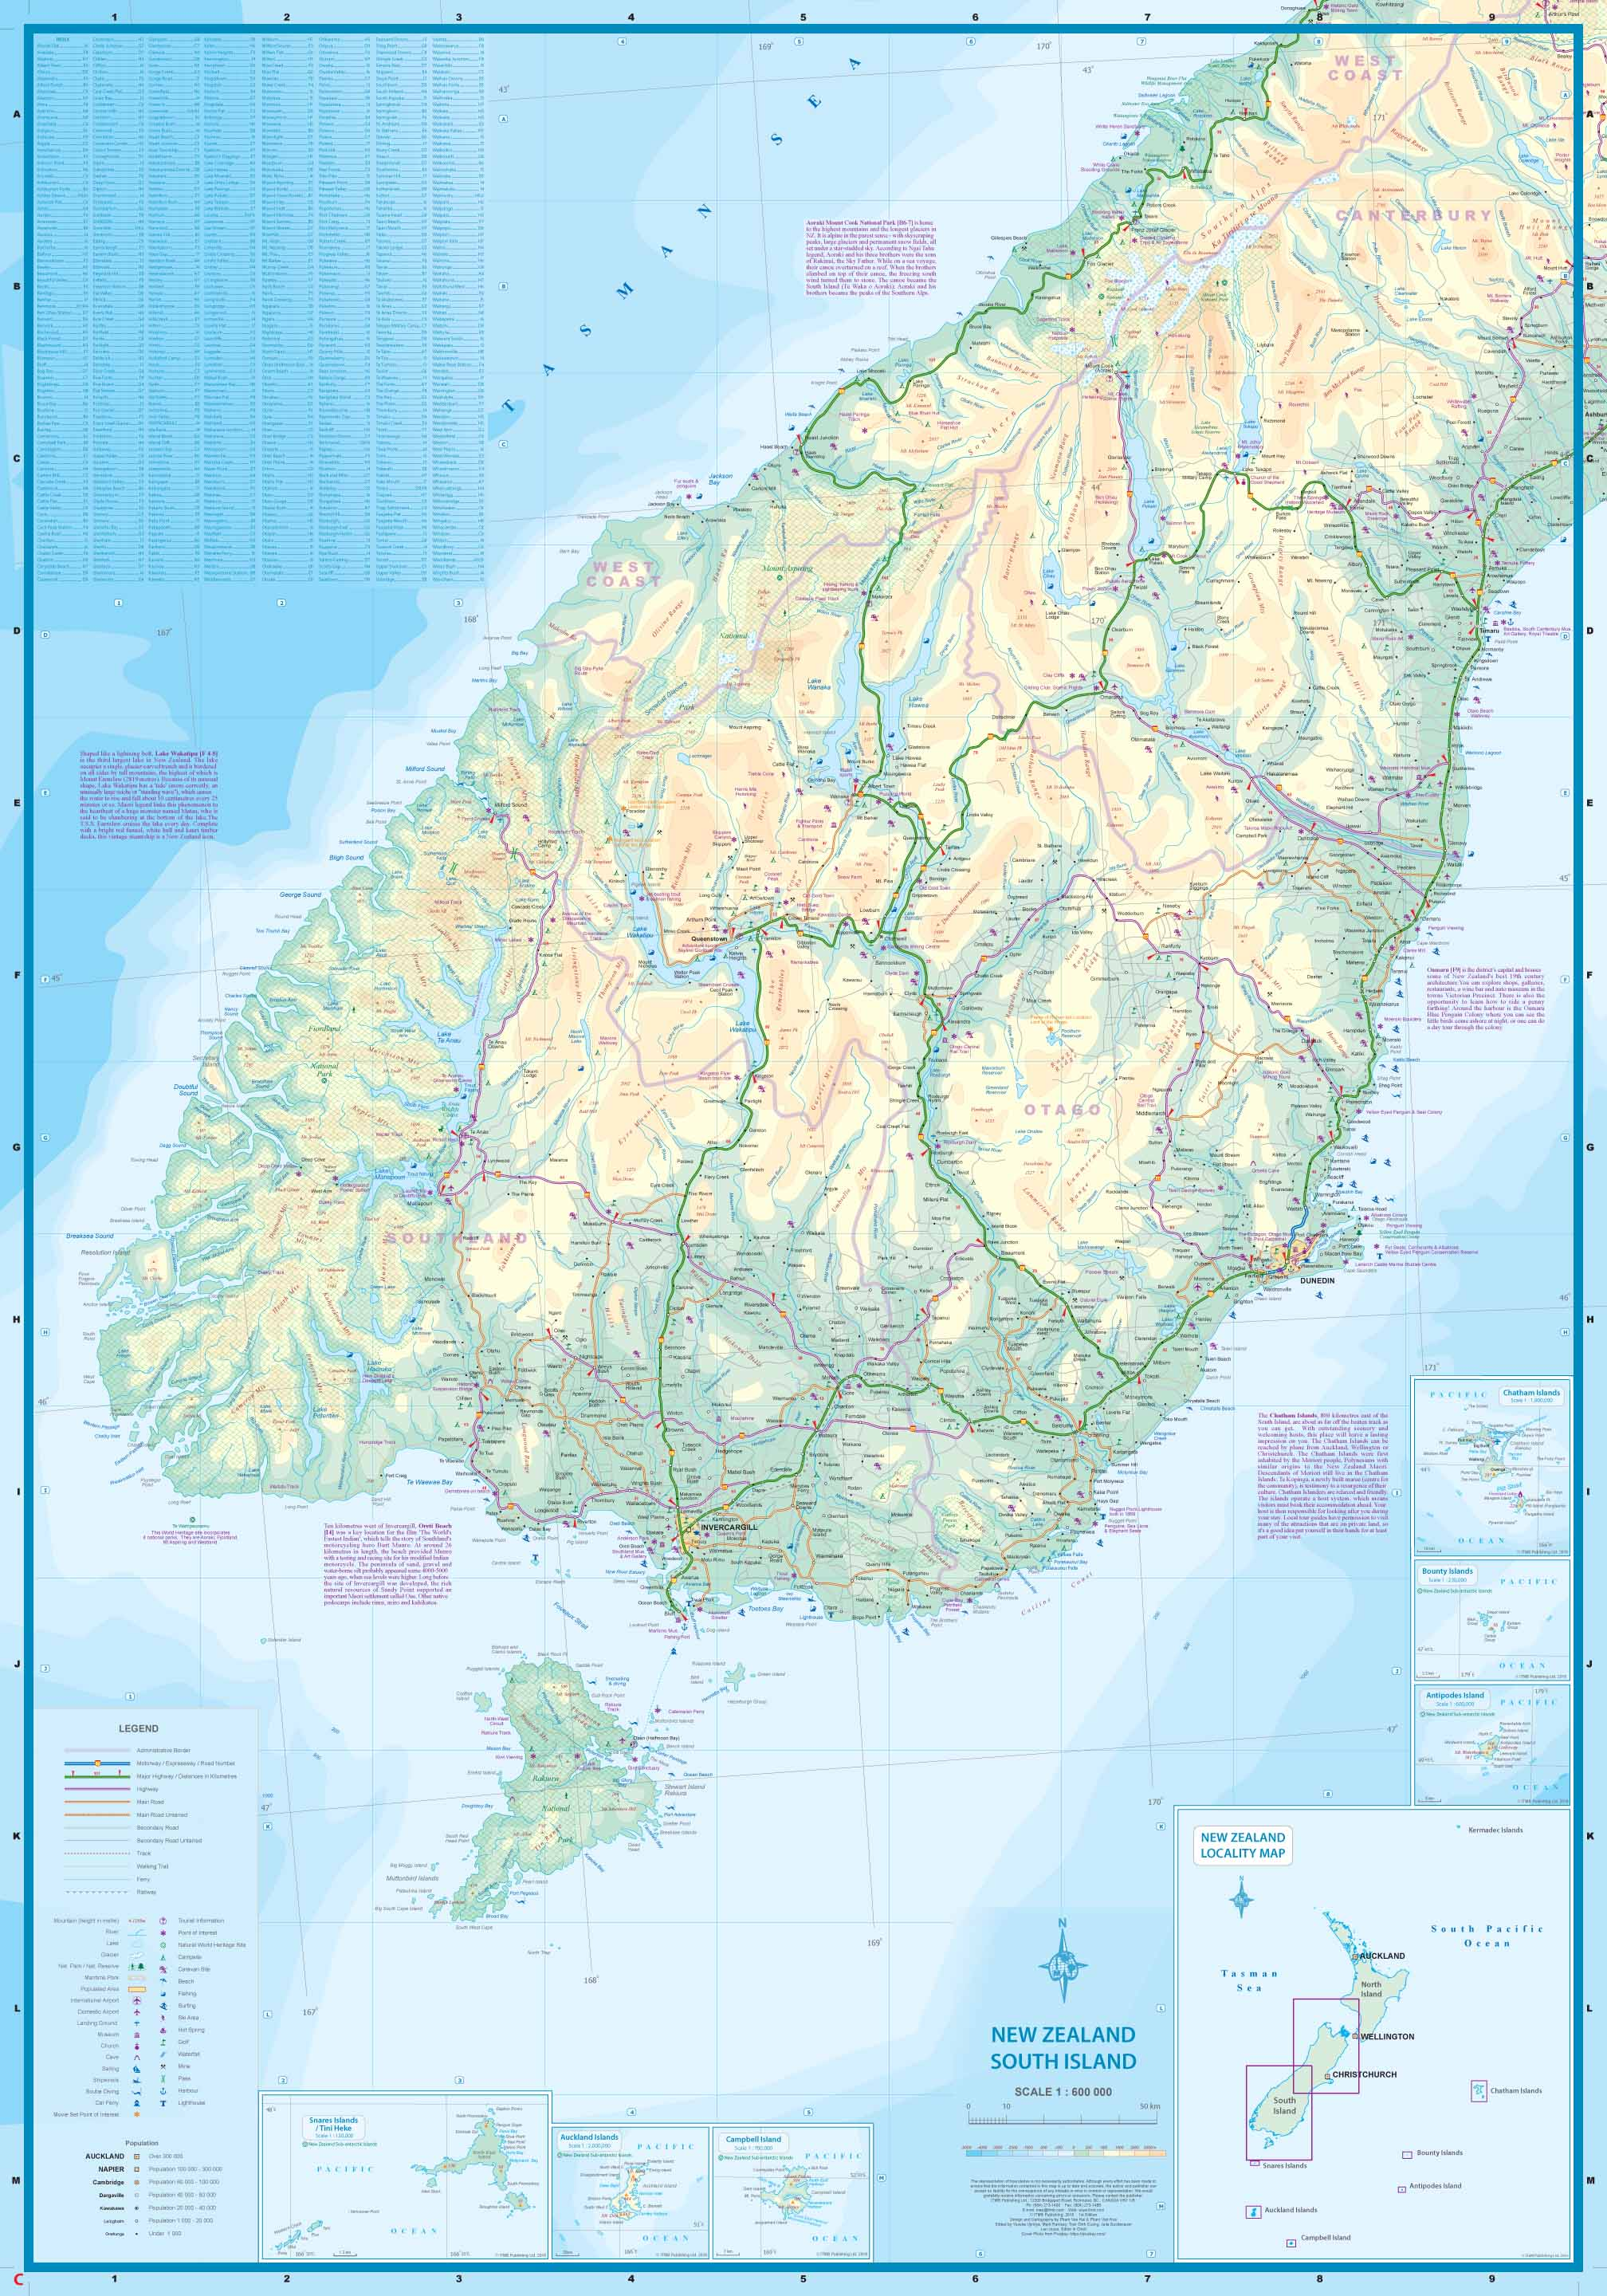 New Zealand Road Map South Island.Maps For Travel City Maps Road Maps Guides Globes Topographic Maps